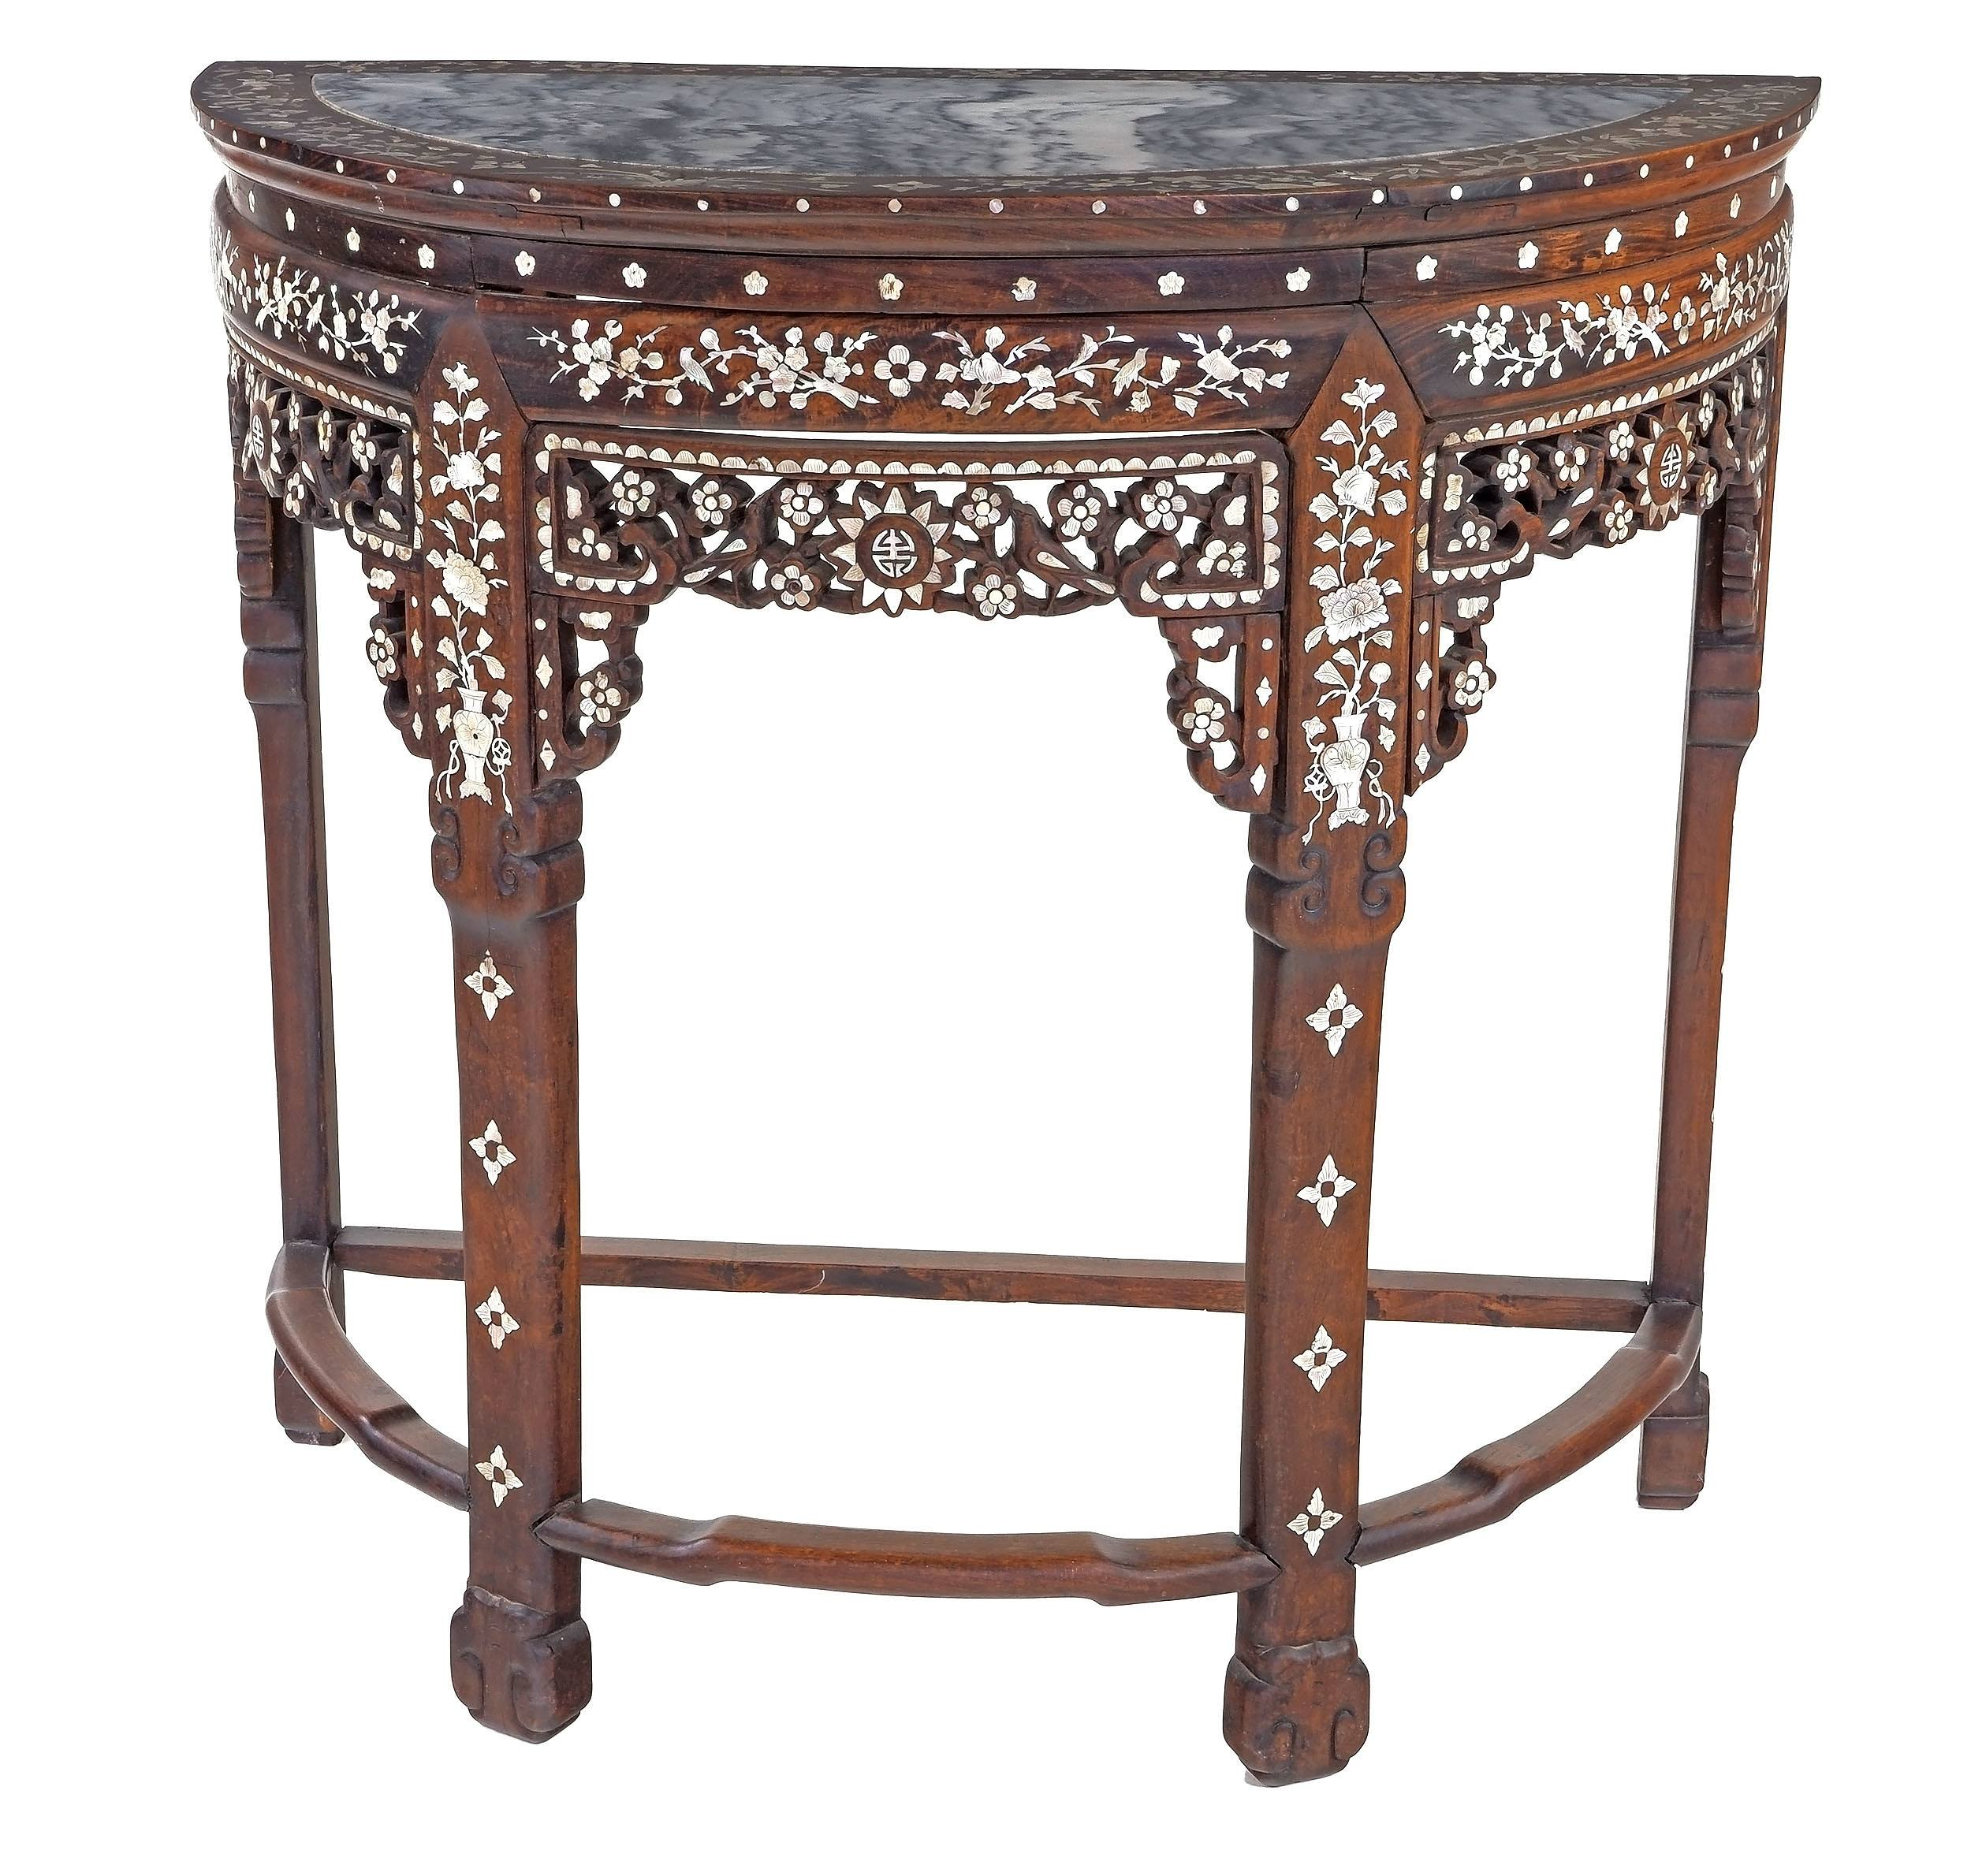 'Chinese Hongmu Rosewood Pearl Shell Inlaid and Marble Top Demi Lune Console Table, Late 19th/Early 20th Century'